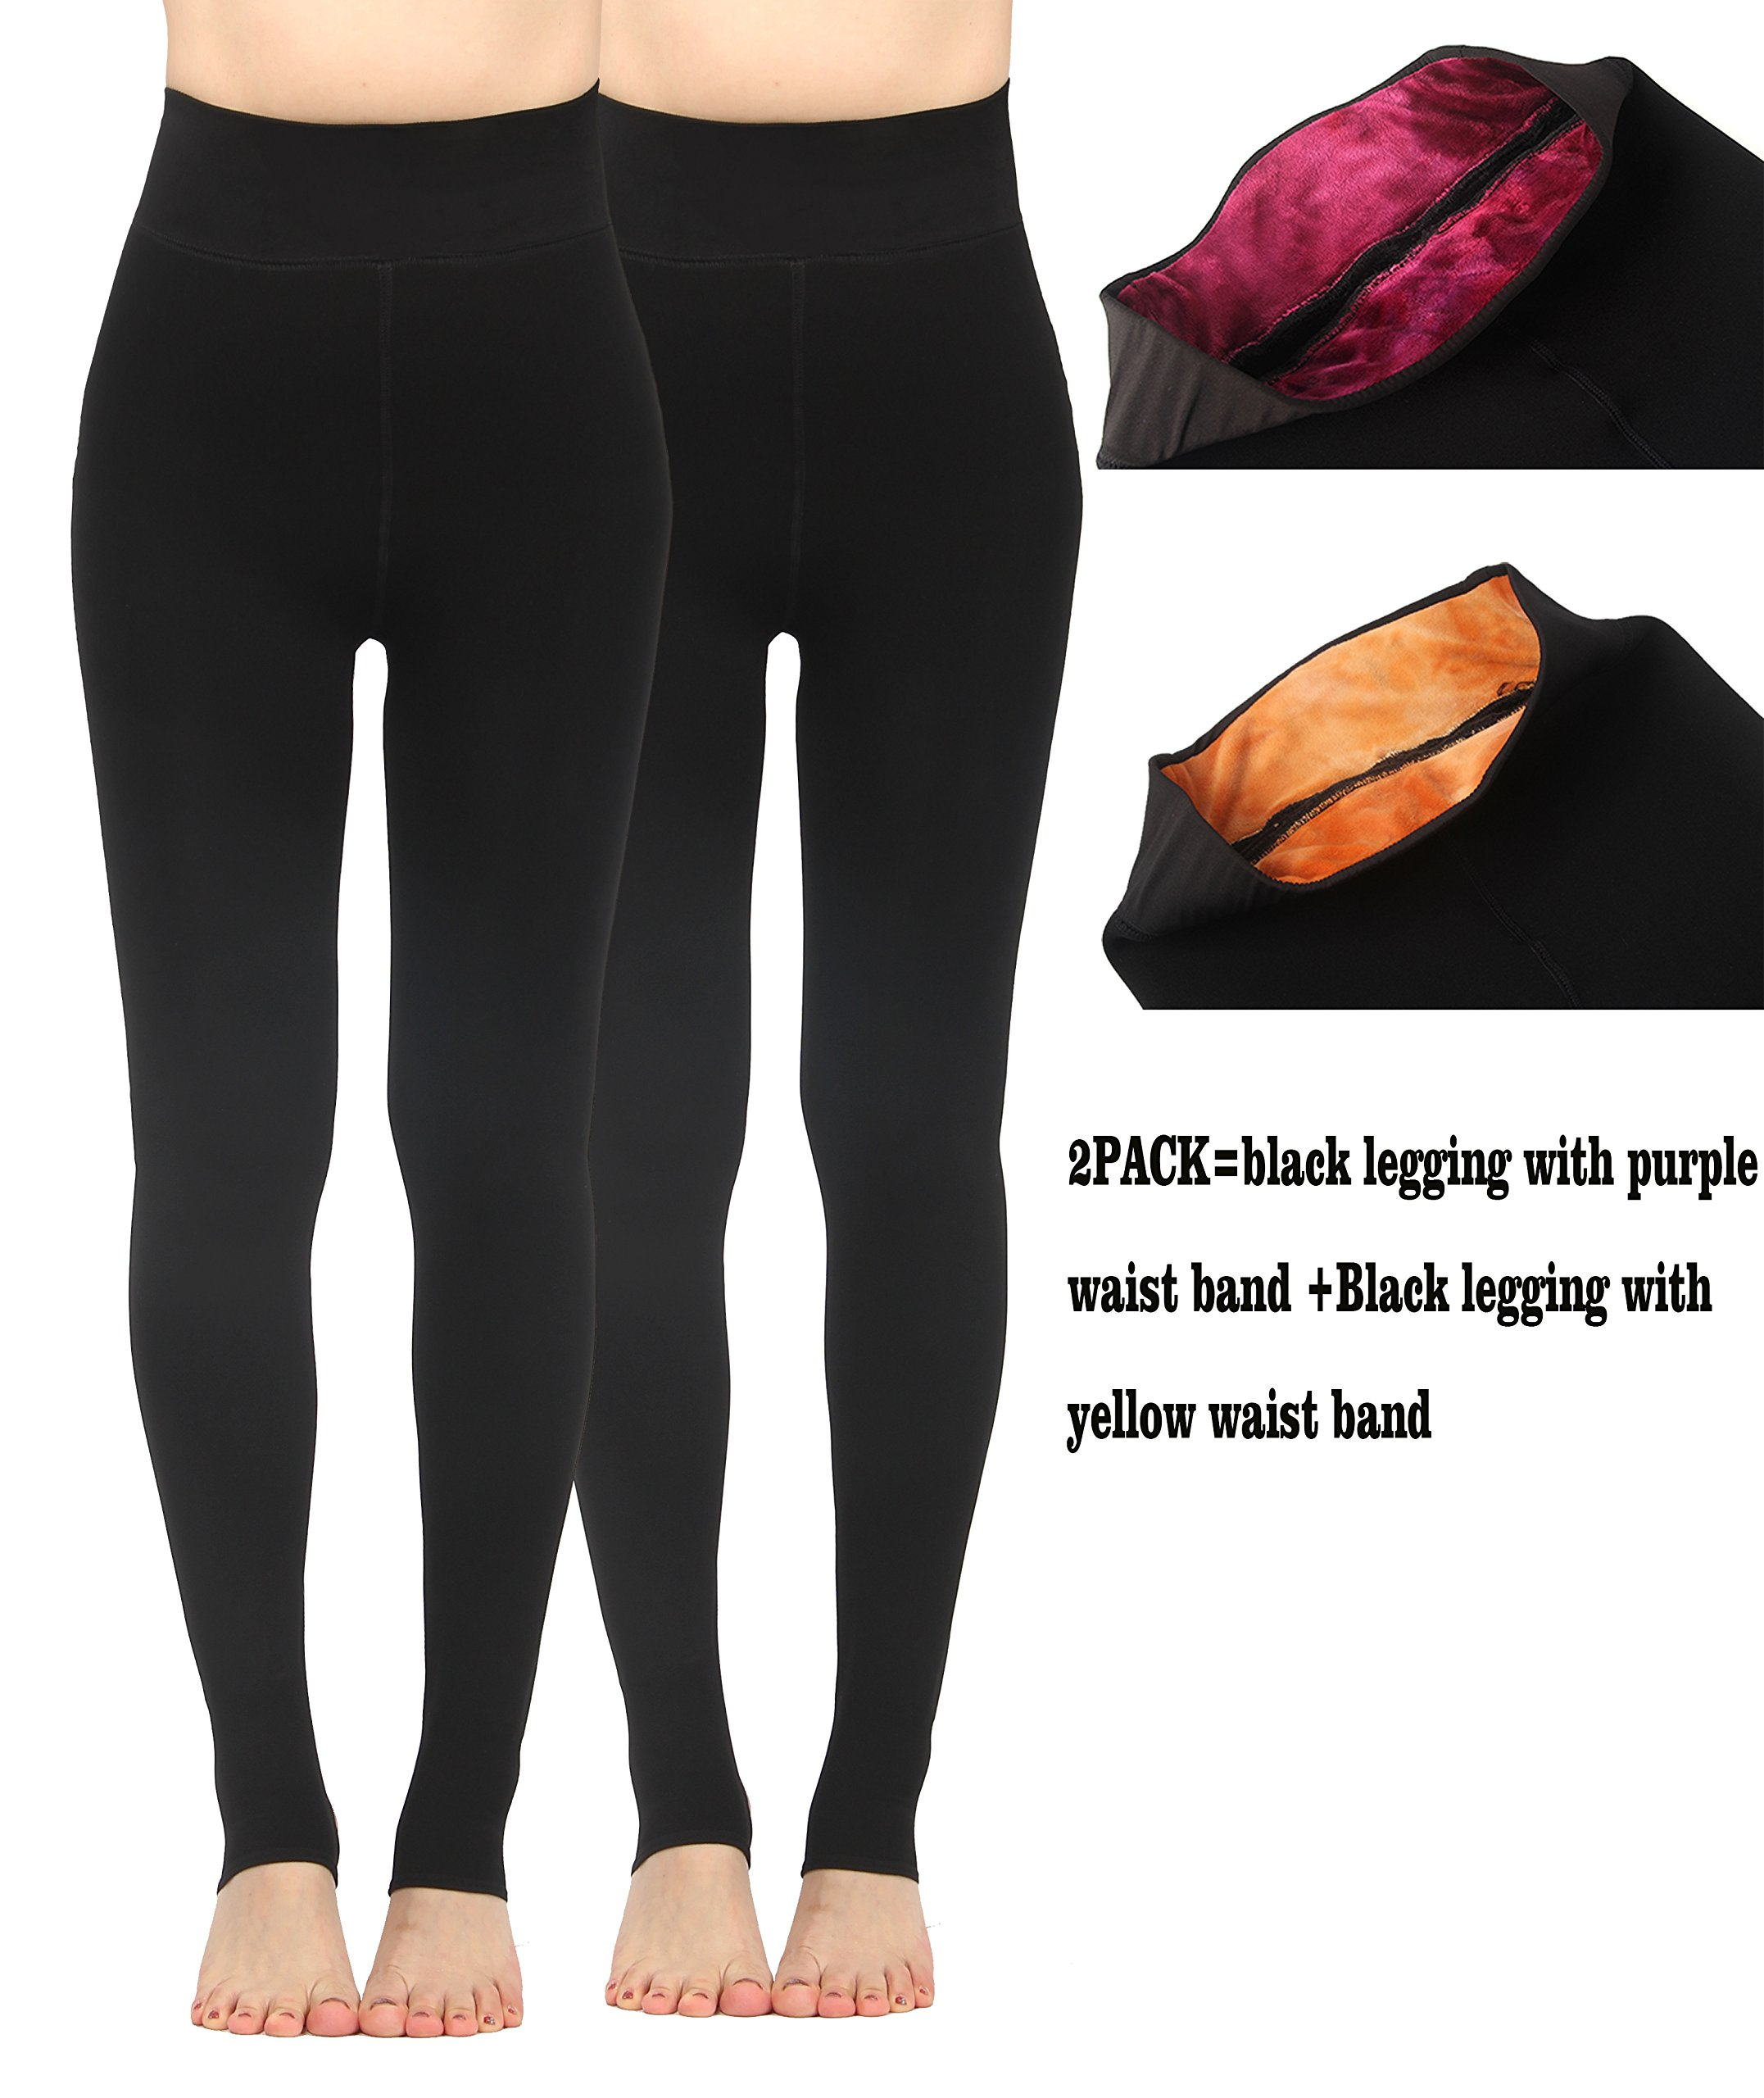 iLoveSIA 2PACK Women's Thick Faux Fur Lined Thermal Legging One Size Fit XS to XL by iLoveSIA (Image #3)